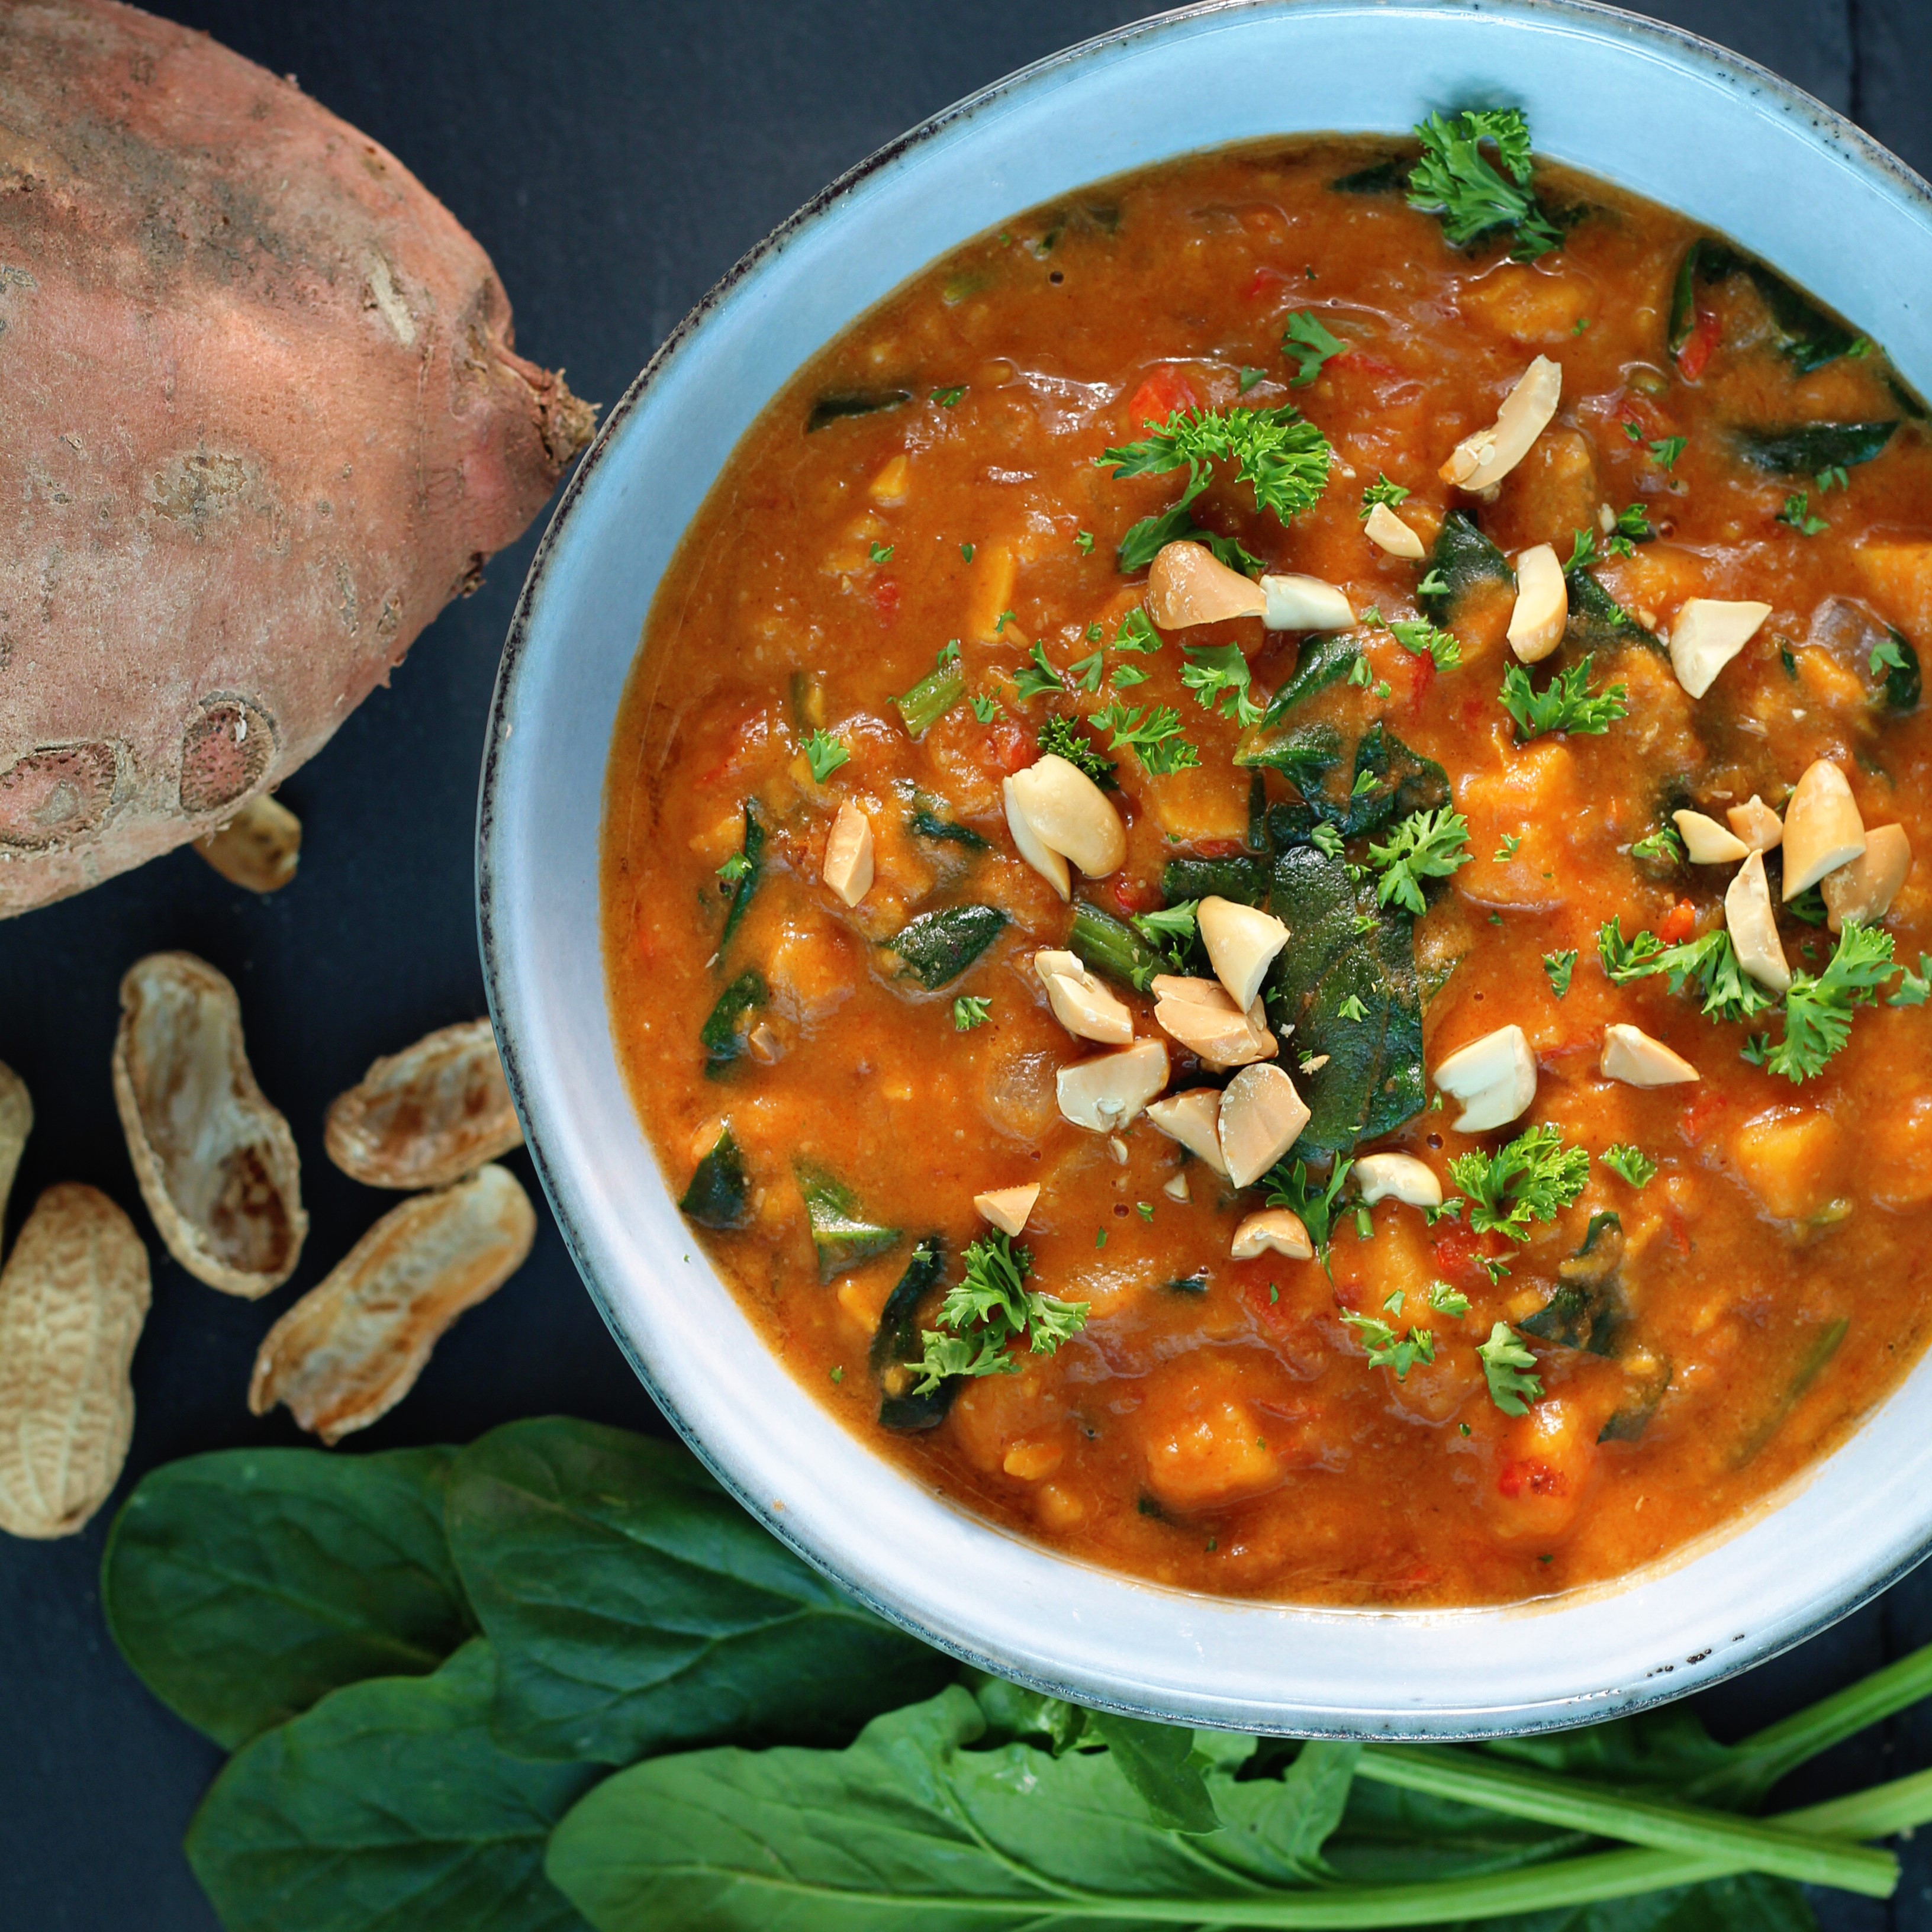 "Loaded up with sweet potatoes, diced tomatoes, red bell peppers, and collard greens, the simple stew is clean, vegan, and ready in no time. ""One of my go-to favorites; hubby would eat it weekly, and he's not vegan,"" says Dea. Enjoy it topped with cilantro and chopped peanuts."